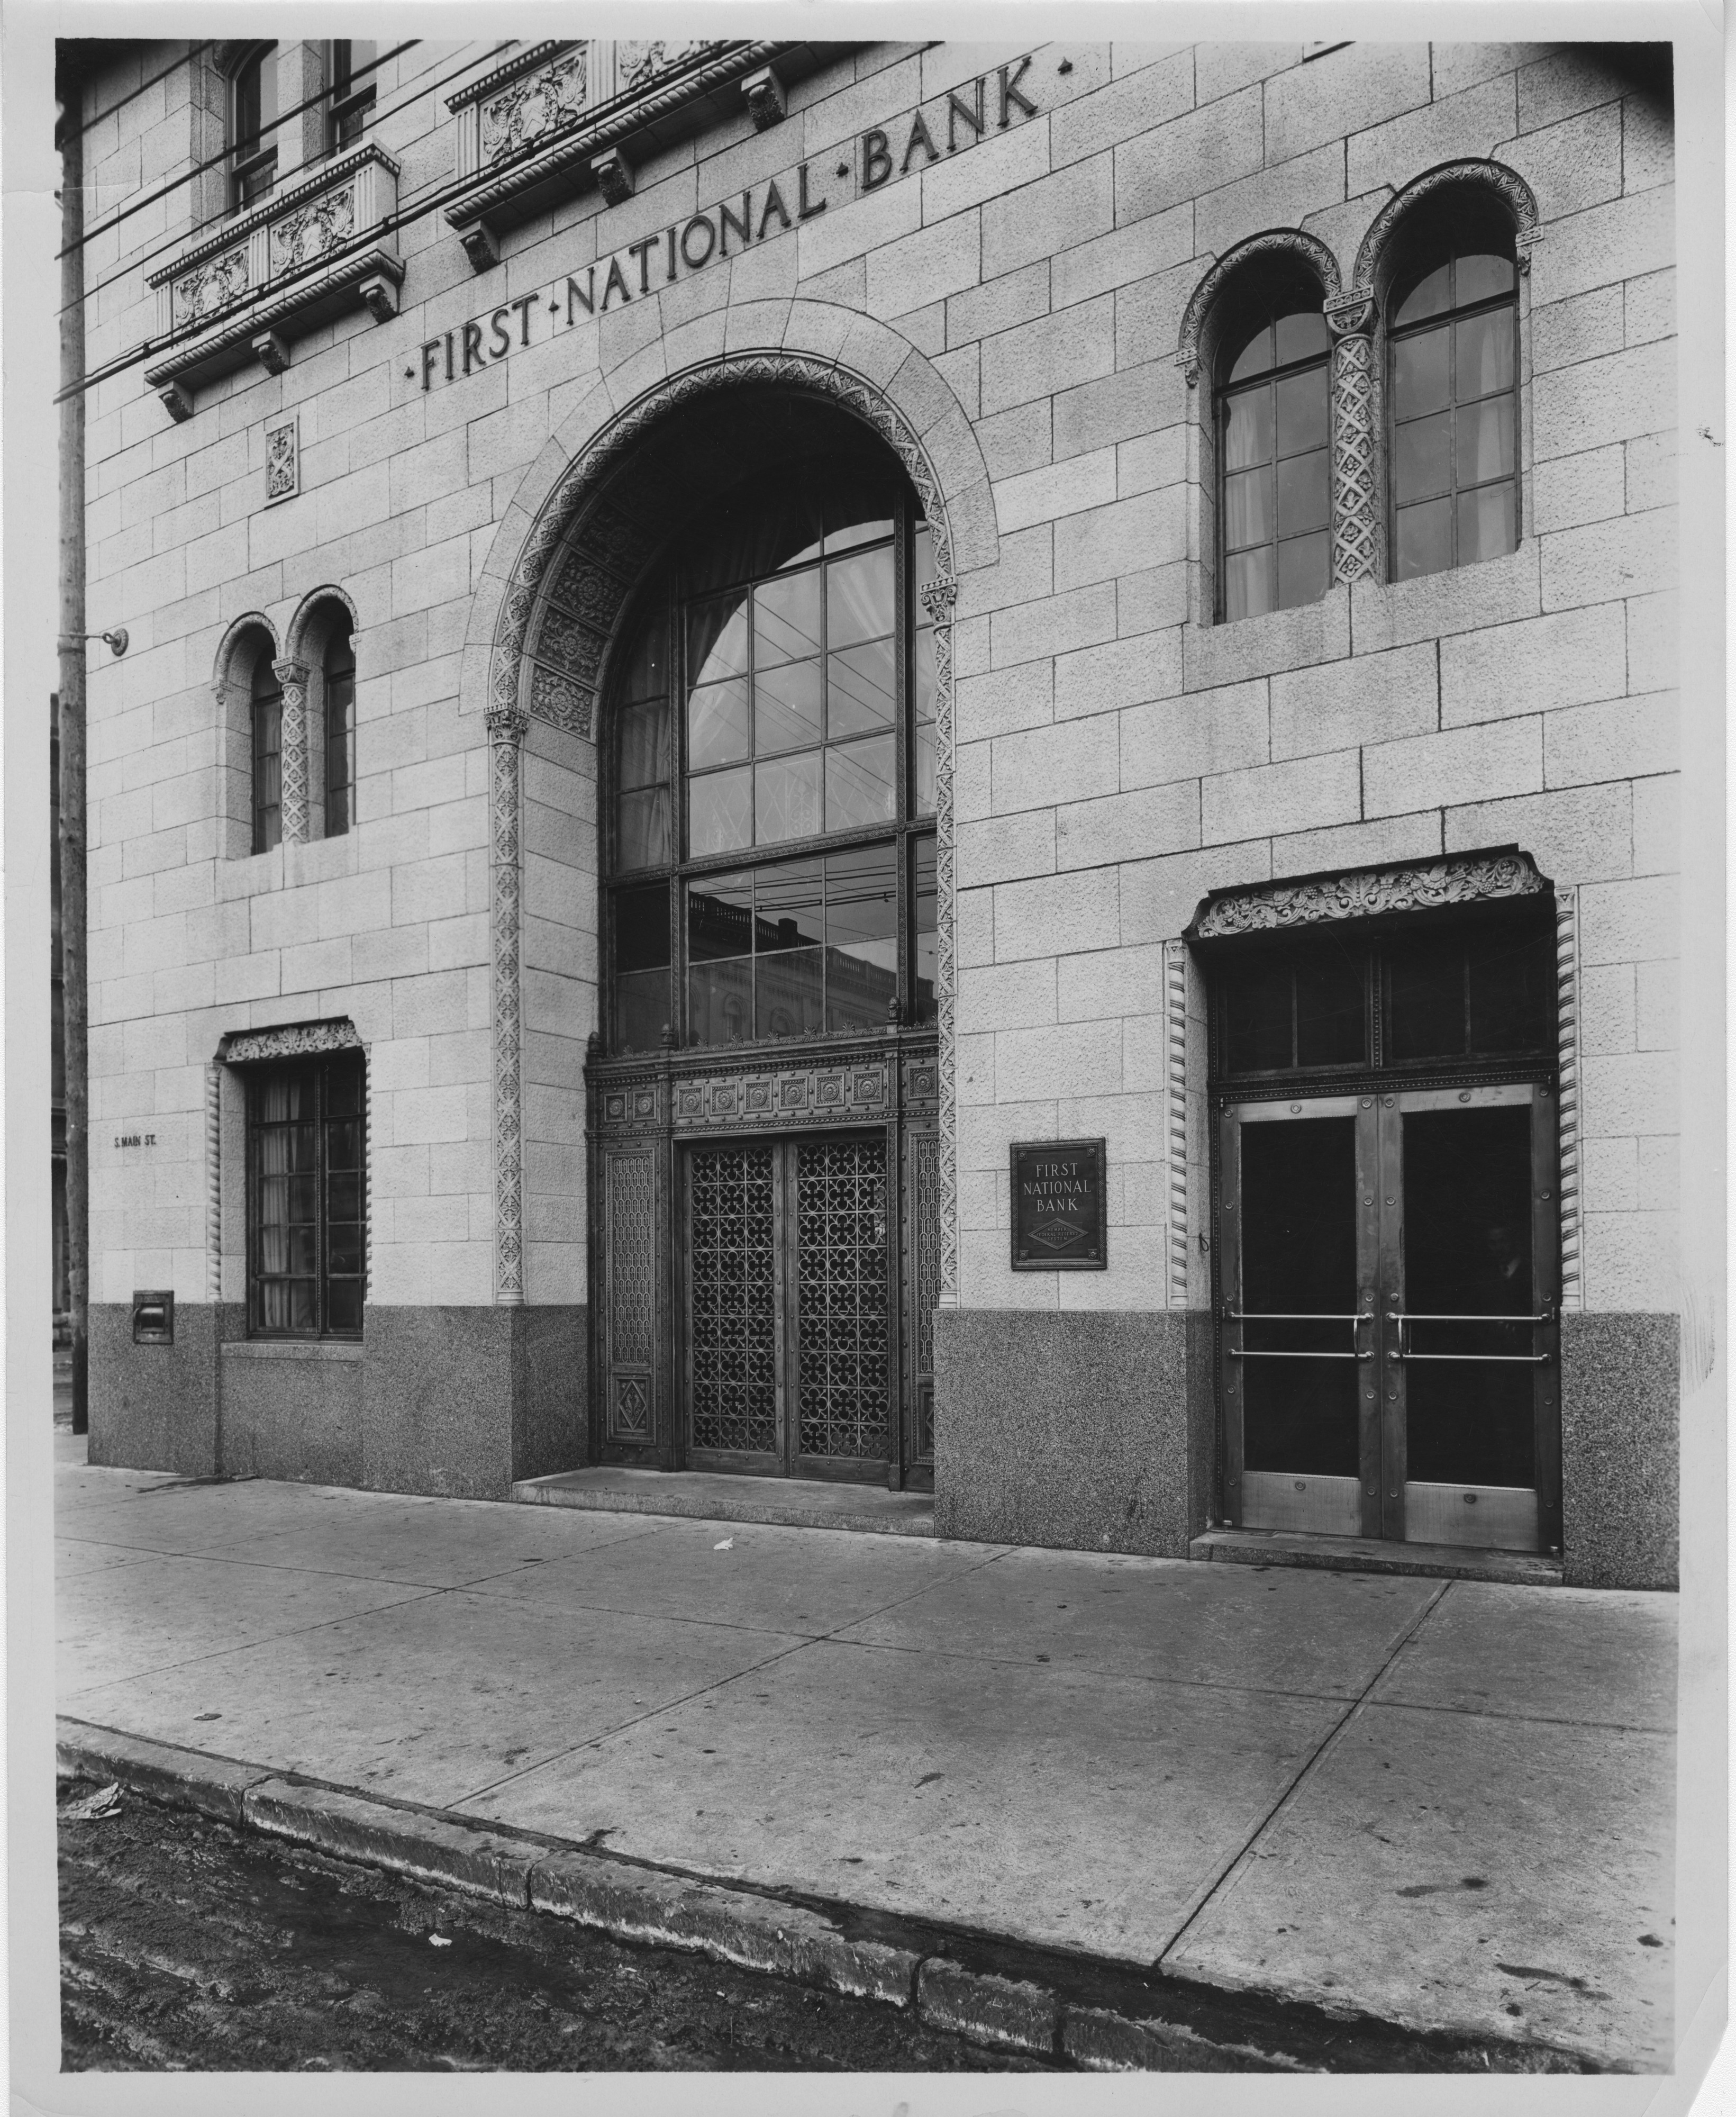 Exterior of First National Bank of Ann Arbor, circa 1930 image